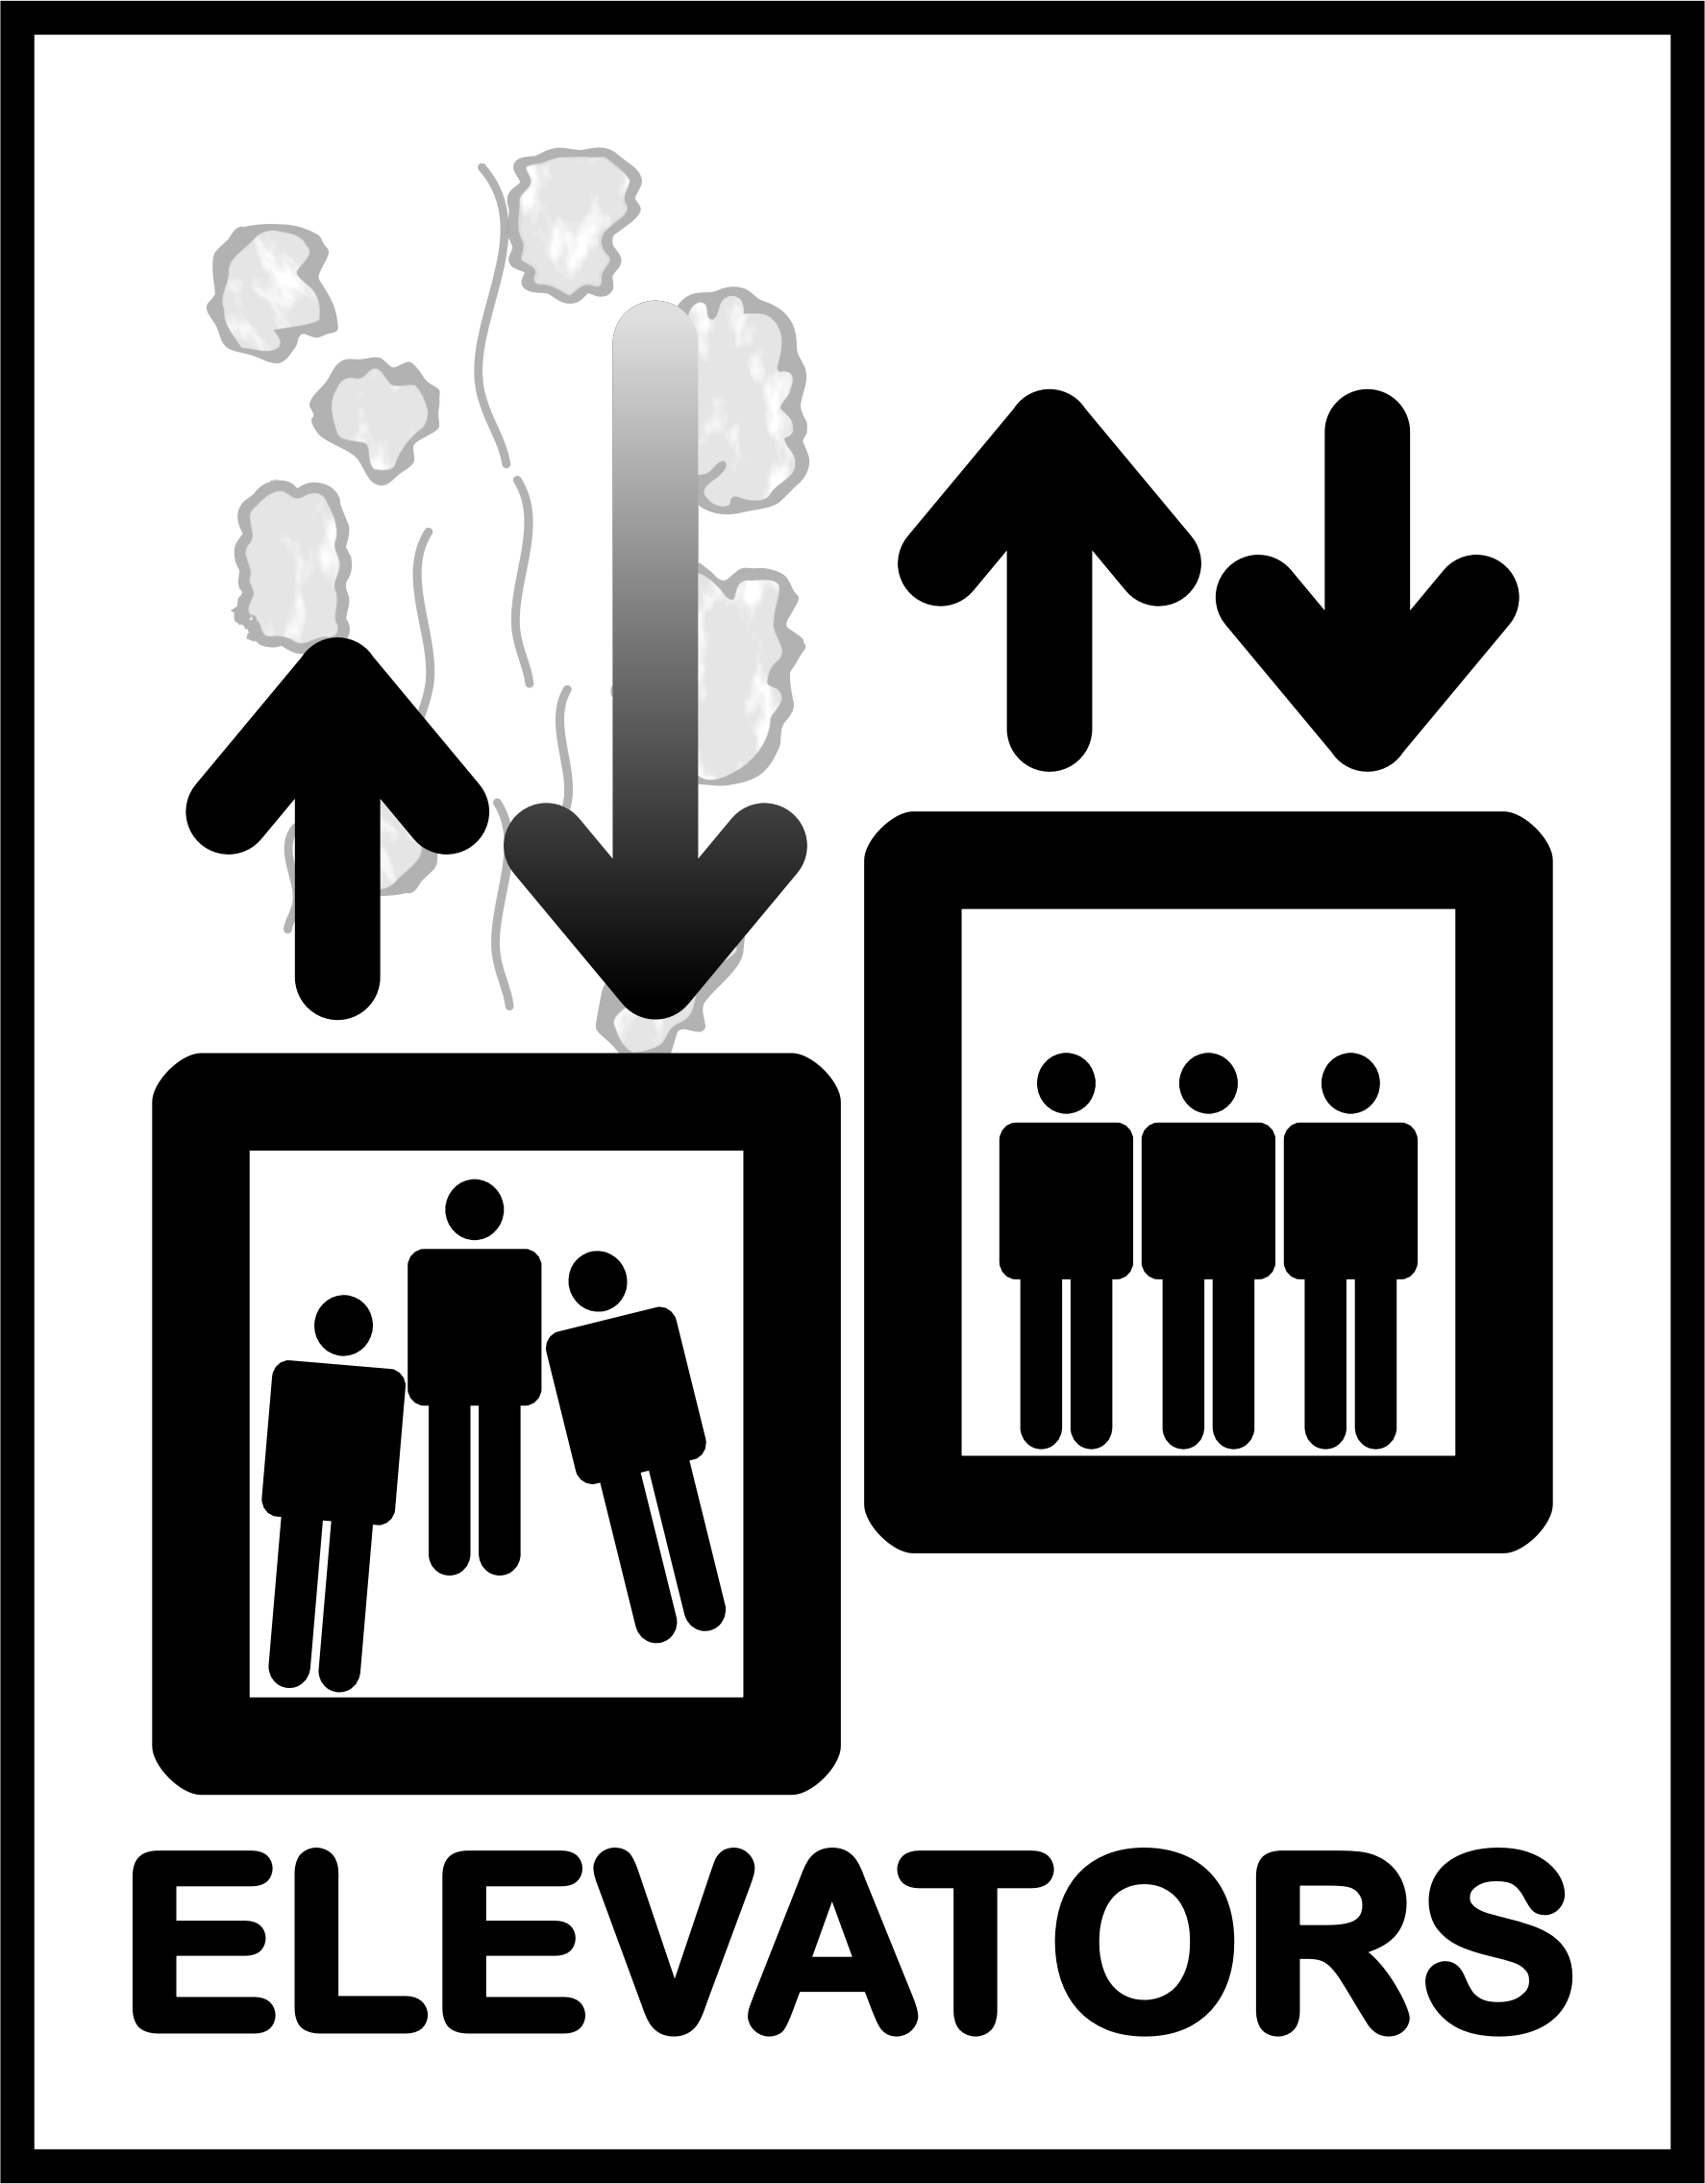 clip art freeuse library Sign big image png. Elevator clipart.